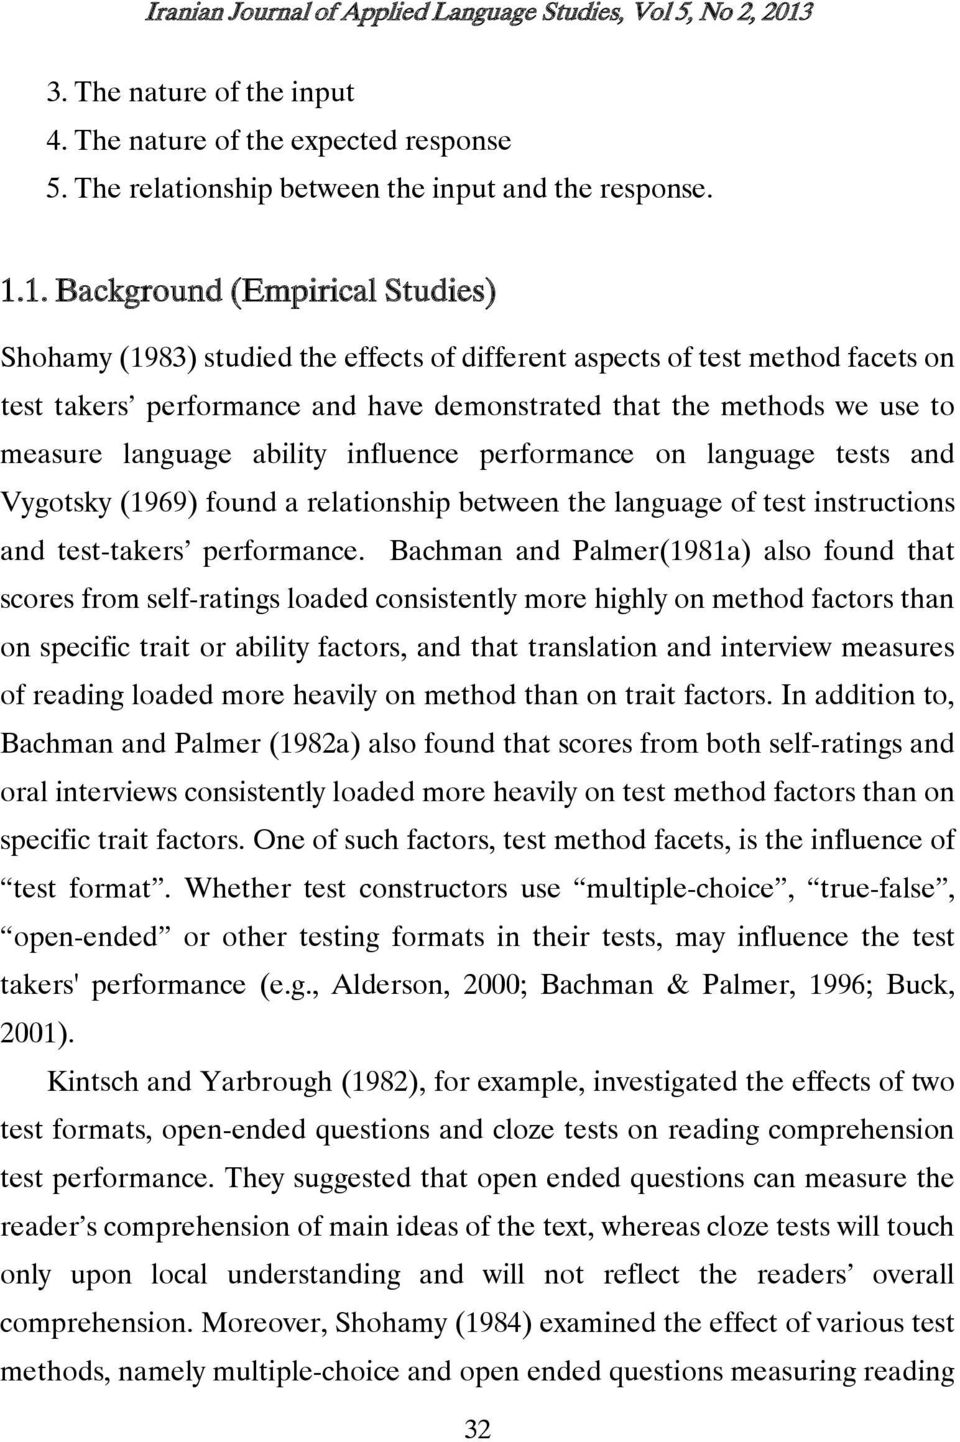 1. Background (Empirical Studies) Shohamy (1983) studied the effects of different aspects of test method facets on test takers performance and have demonstrated that the methods we use to measure